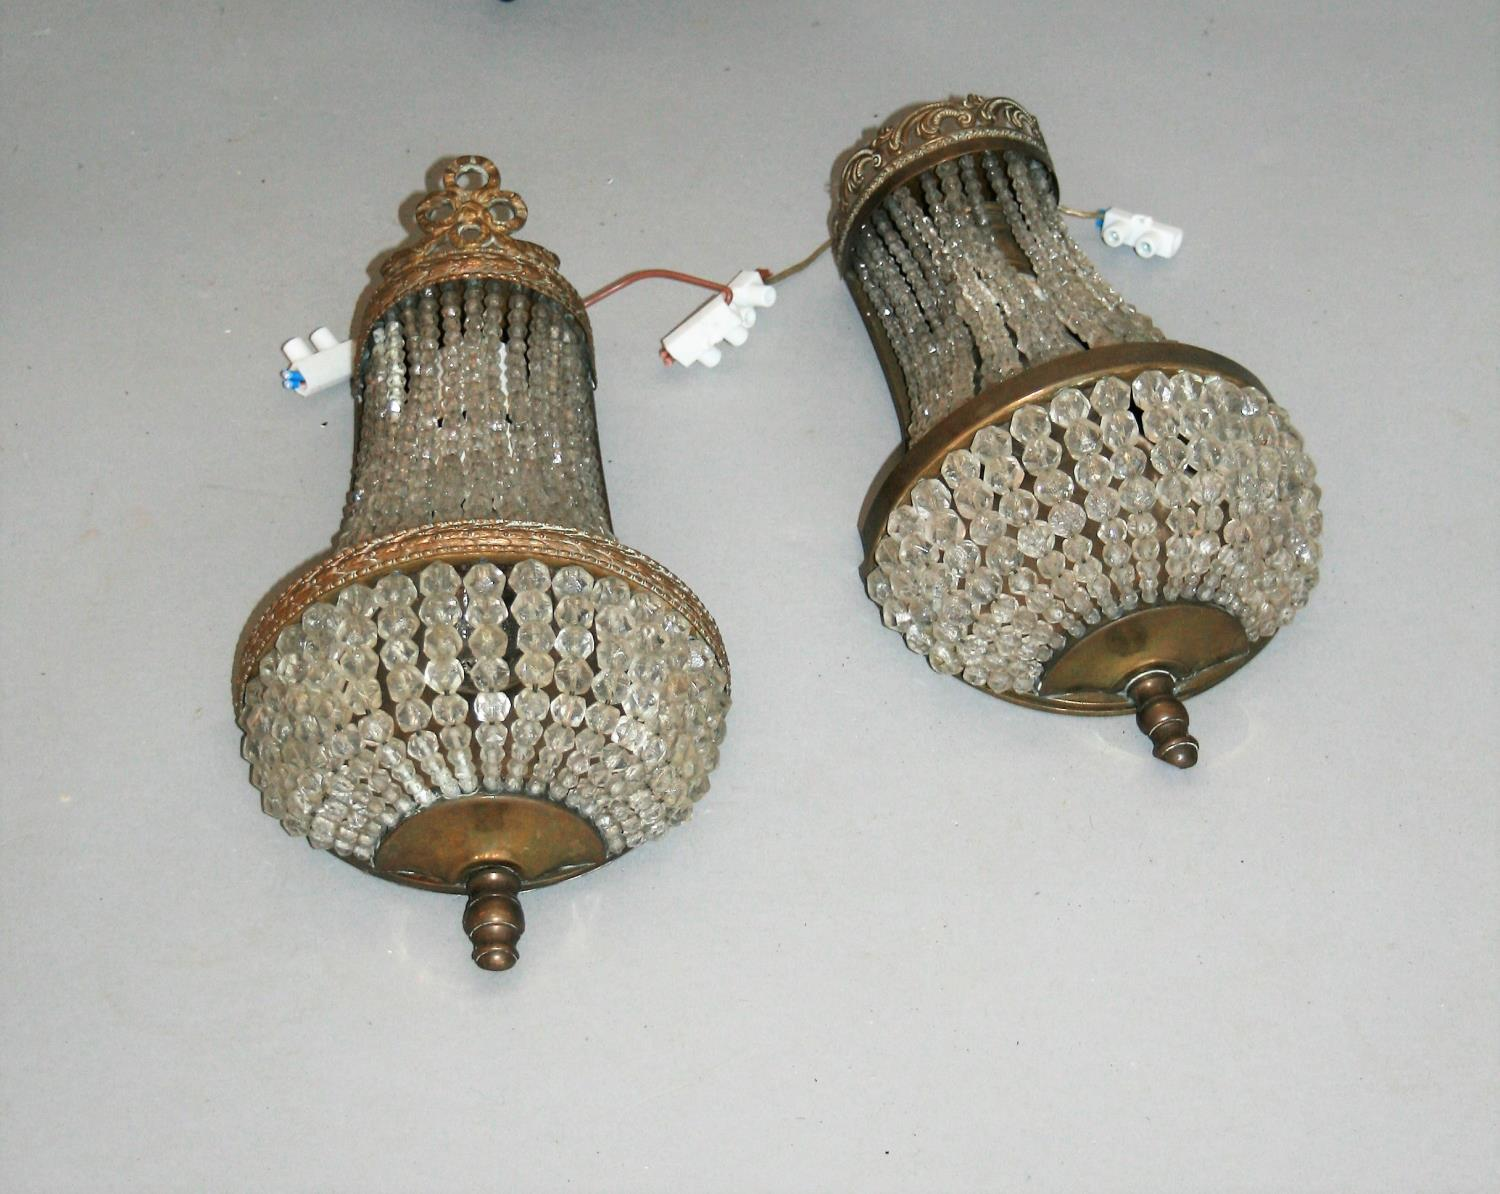 Misc. collection of antique lamps etc. - Image 5 of 5